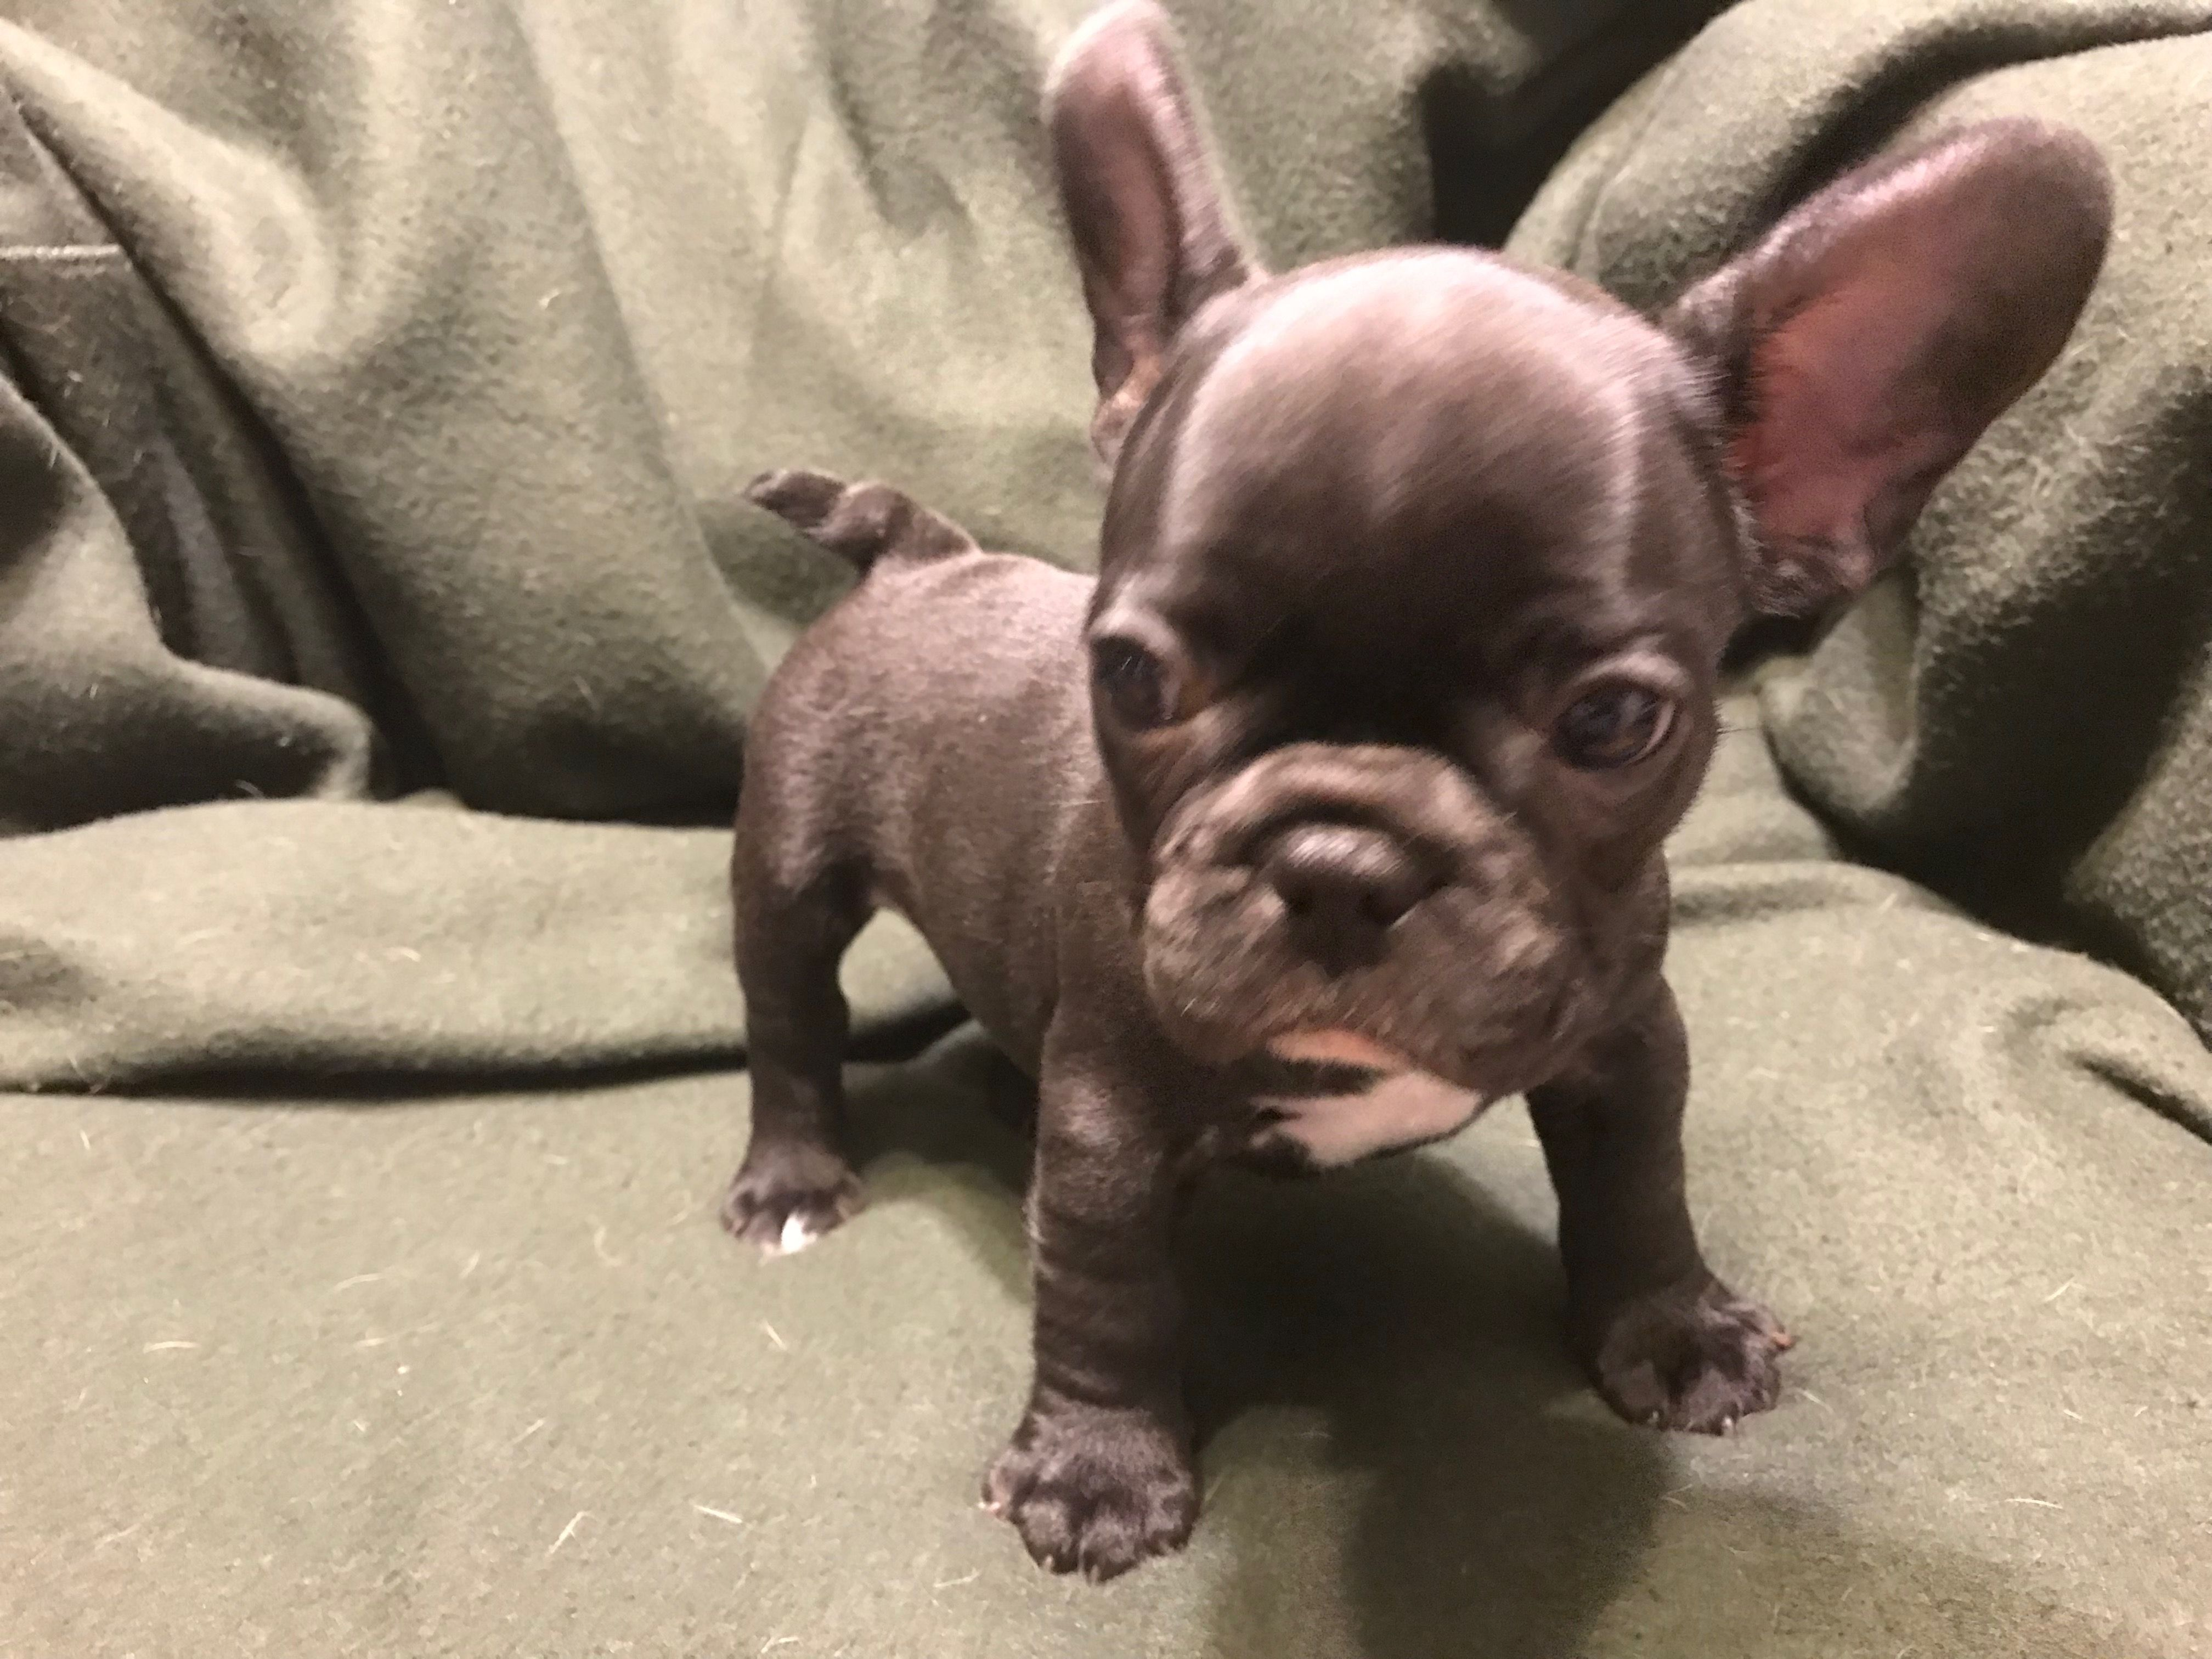 Pin by Carlos Mona on Luna's space French bulldog